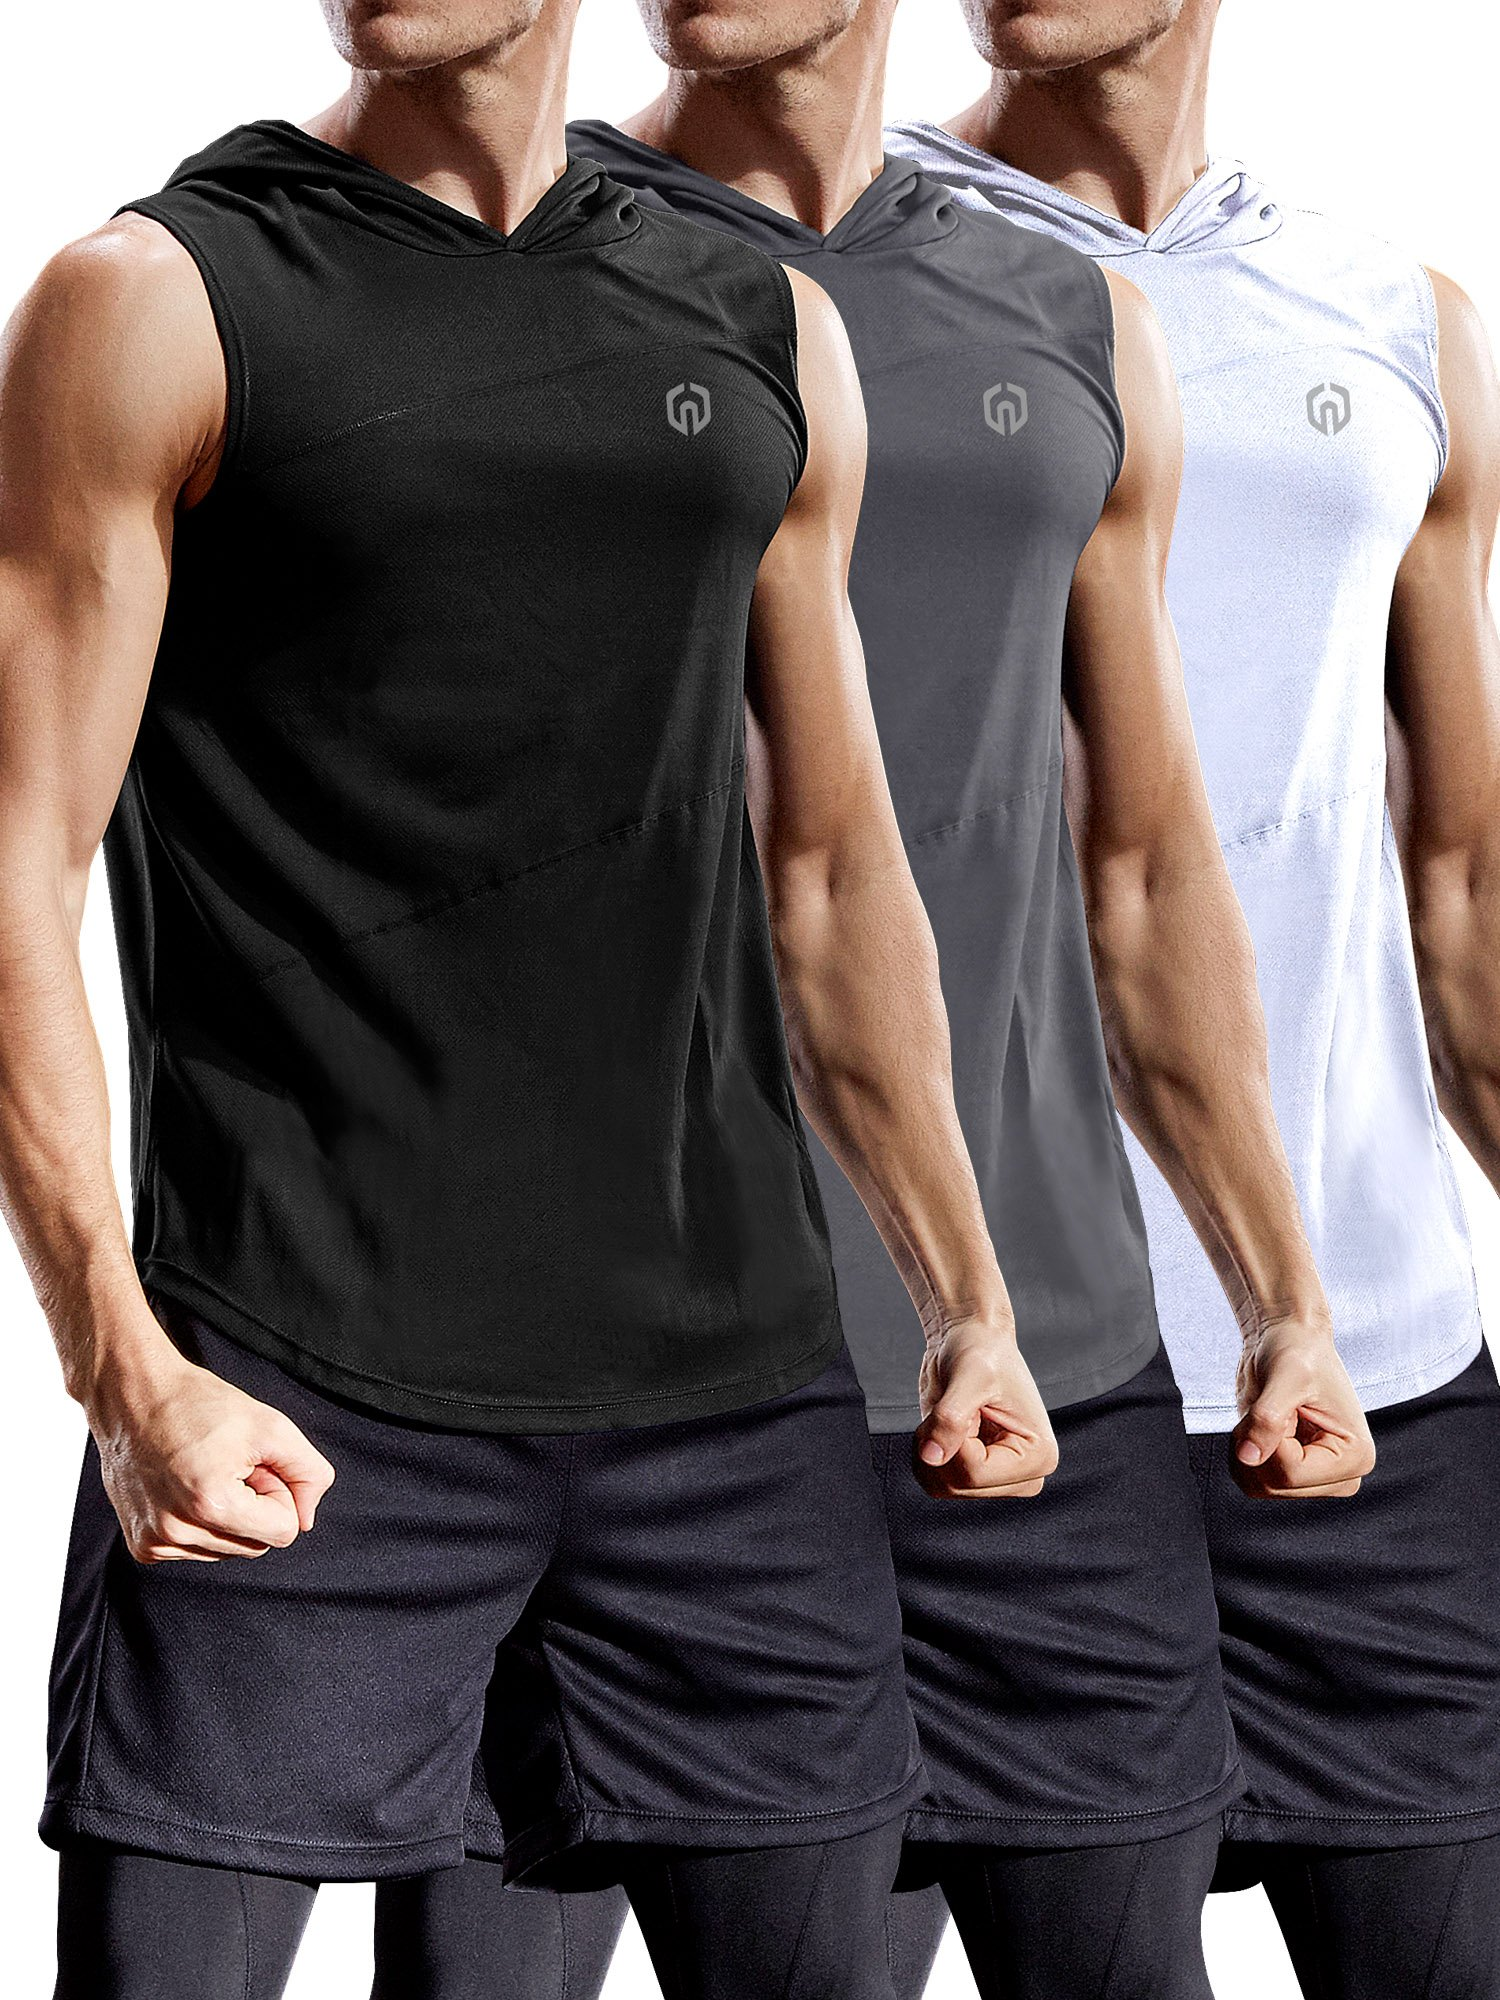 Neleus 3 Pack Workout Athletic Gym Muscle Tank Top with Hoods,5036,Black,Grey,White,US M,EU L by Neleus